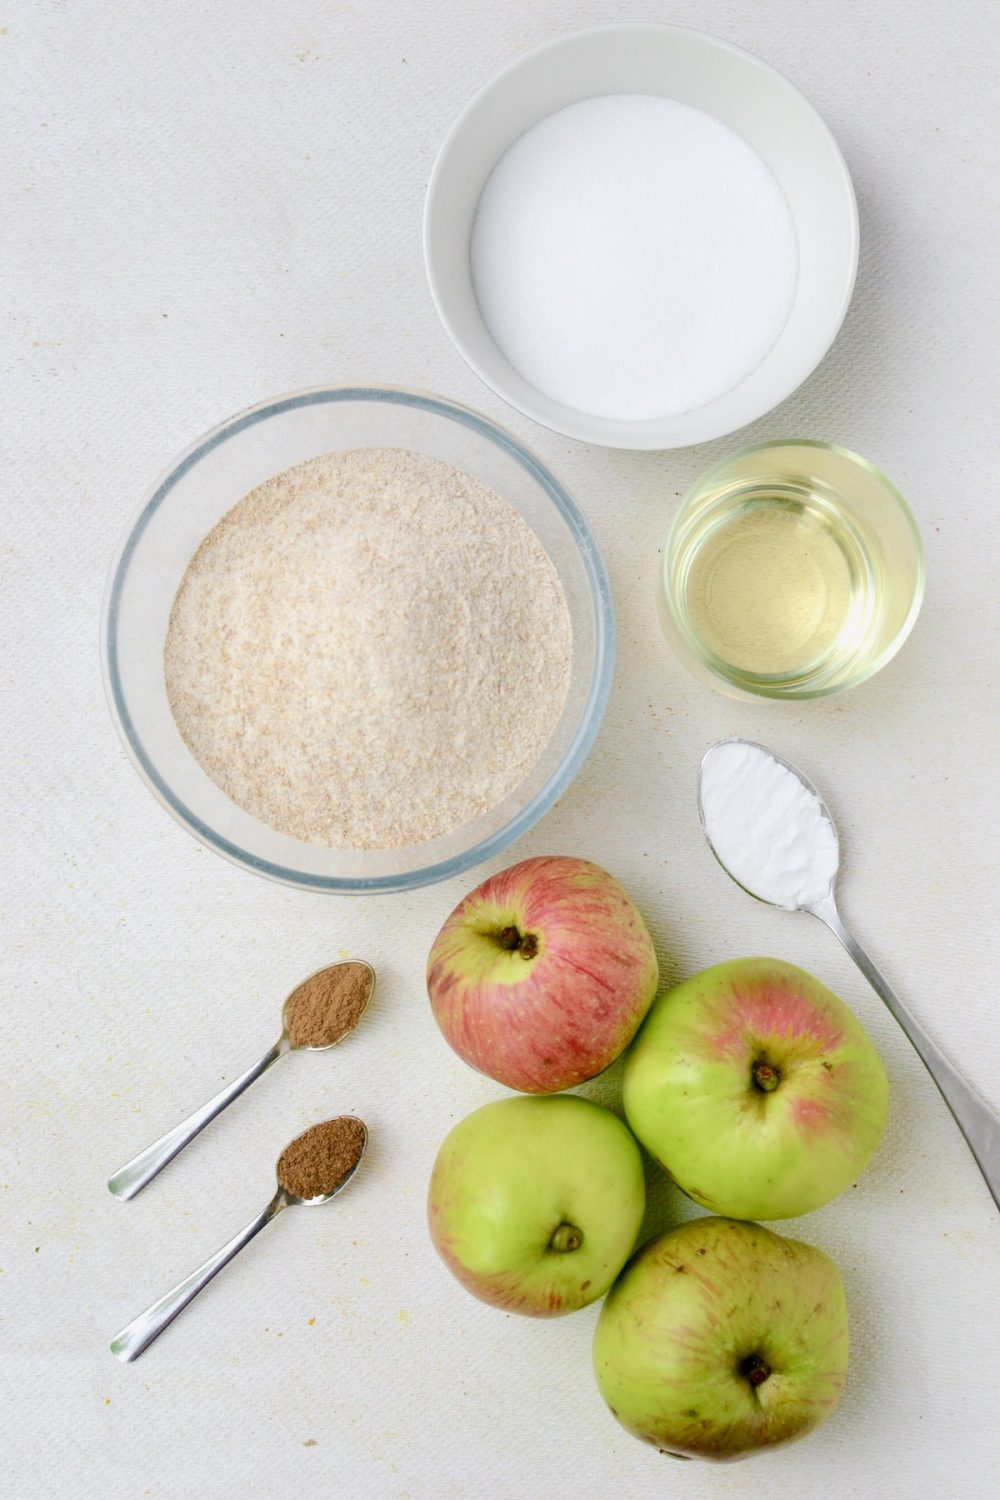 Four apples, a bowl of flour, a bowl of sugar, oil, and spoonfuls of spices and baking soda on a white board.